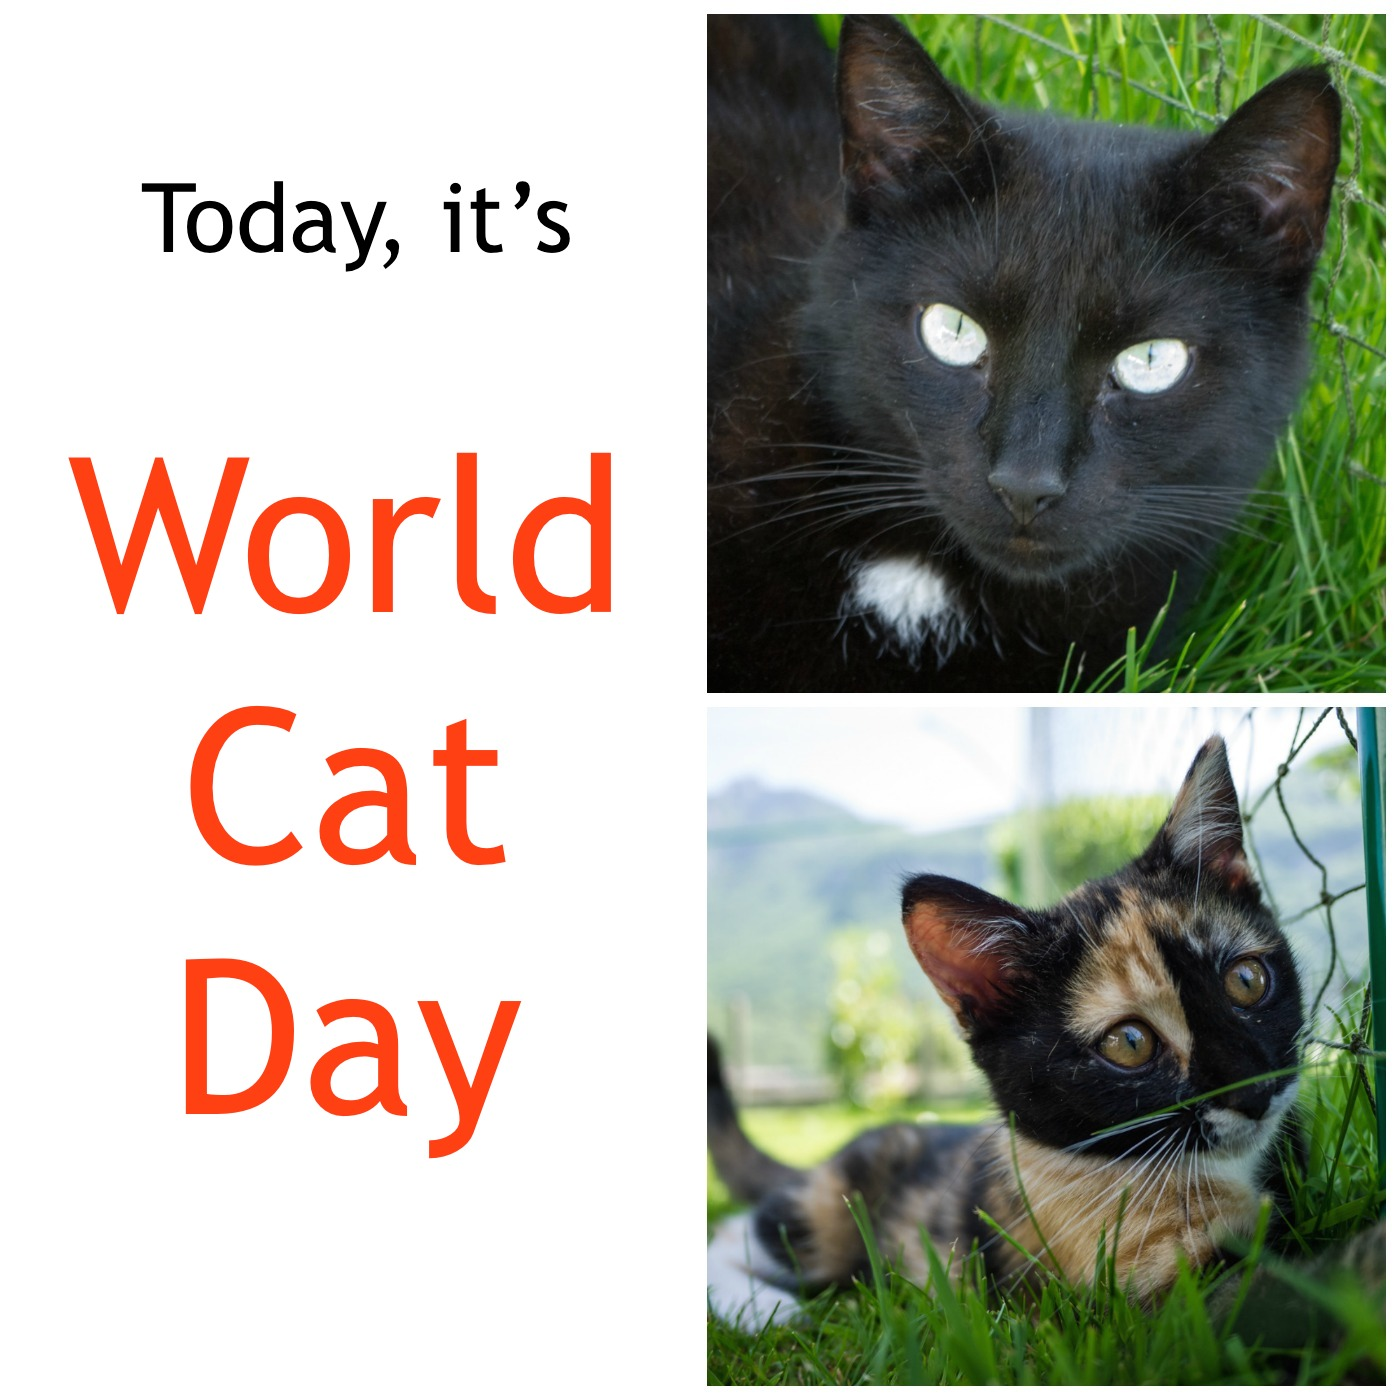 Today is Cat Day 47